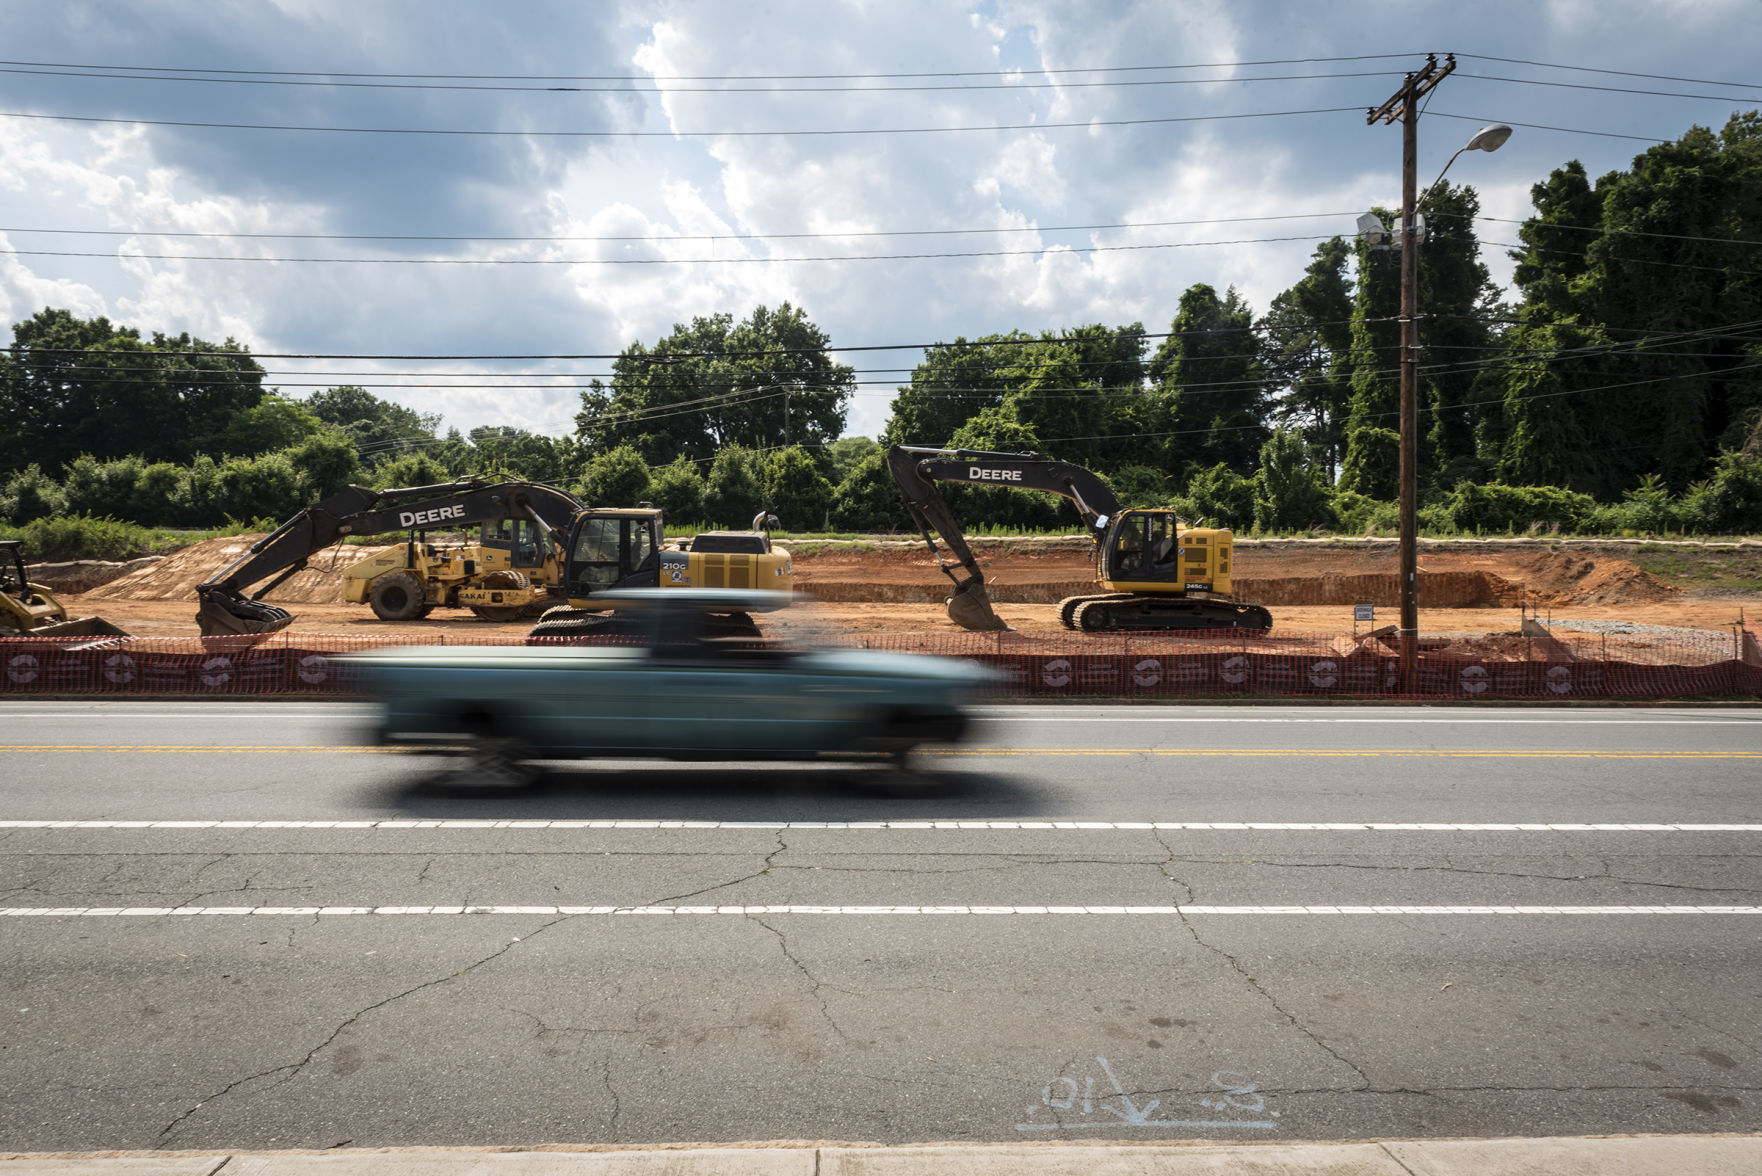 Keeping students safer: Northwest Boulevard closing for 3 weeks while improvements made | Winston Salem Journal